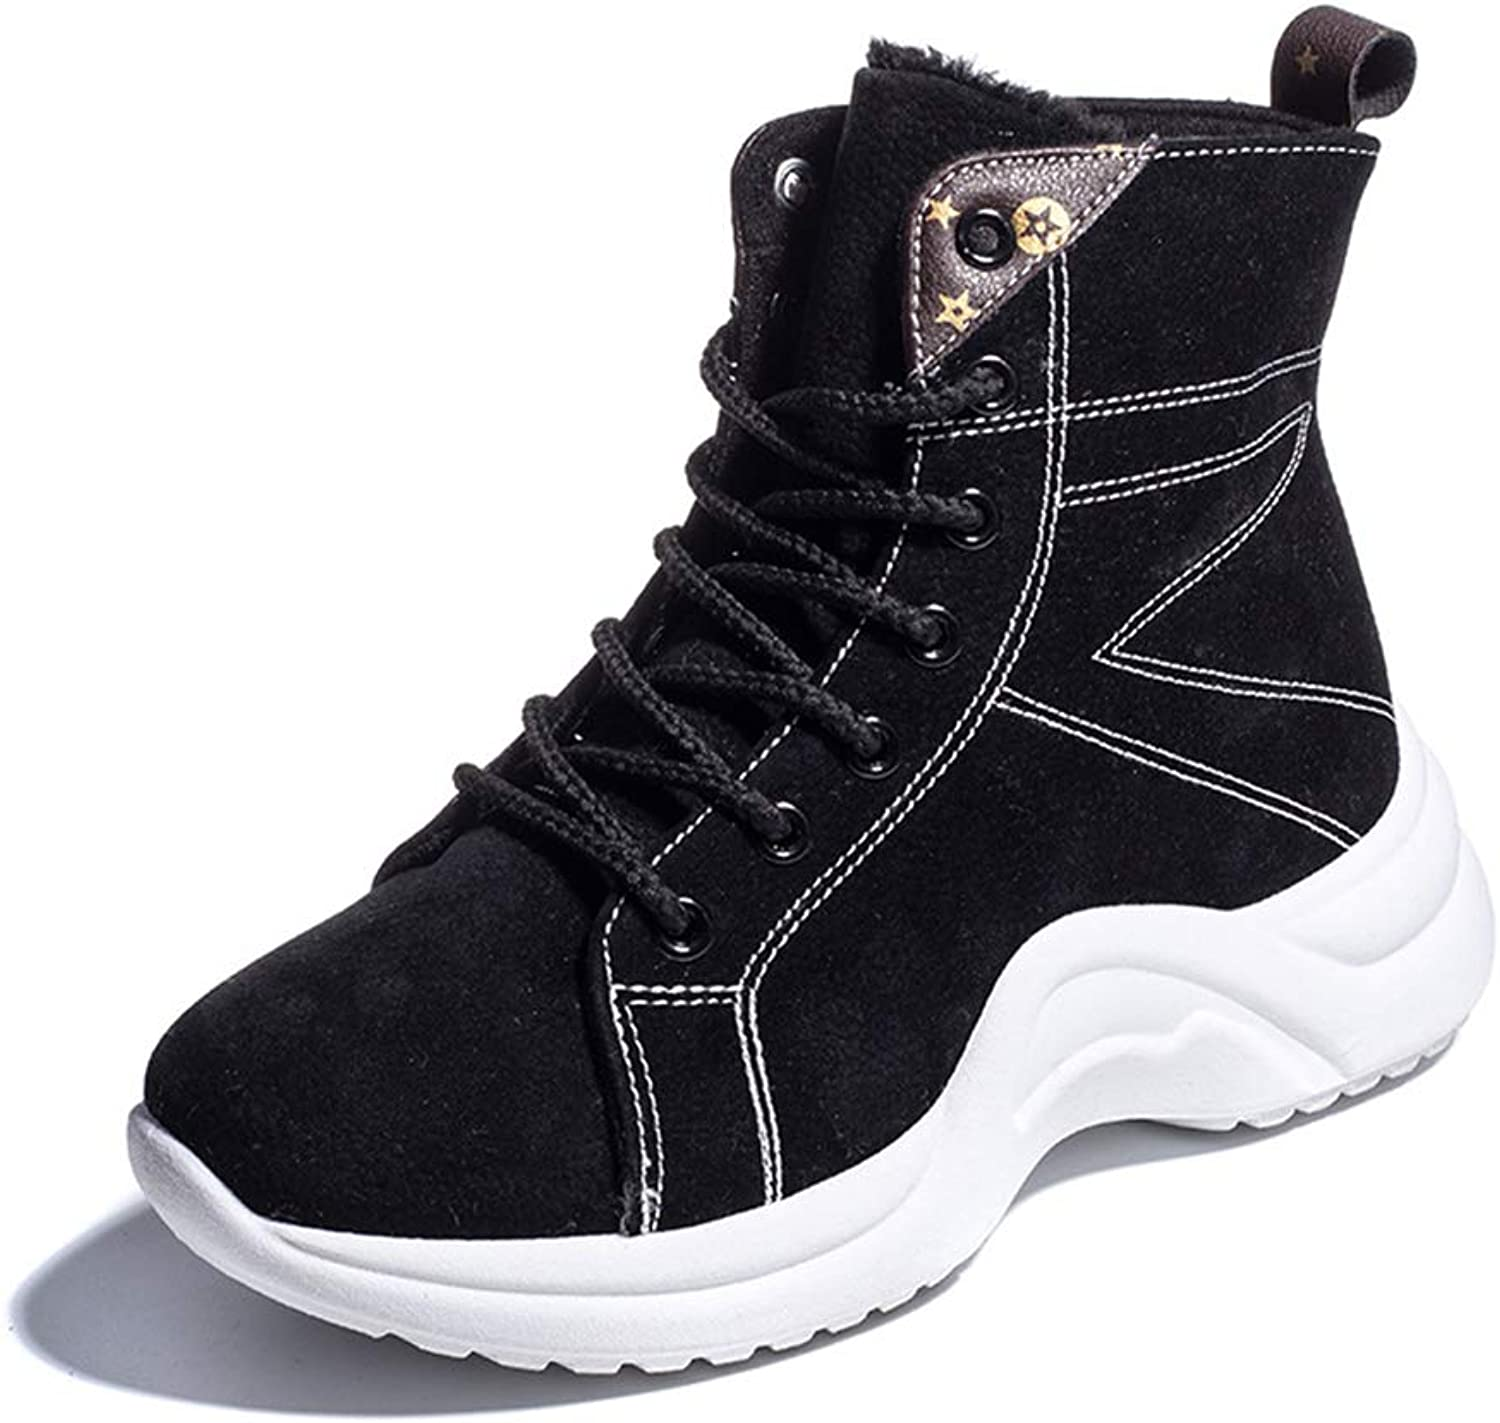 Super explosion Casual Woman Warm Snow Boots Lightweight Waterproof Short Tube Student Sneakers